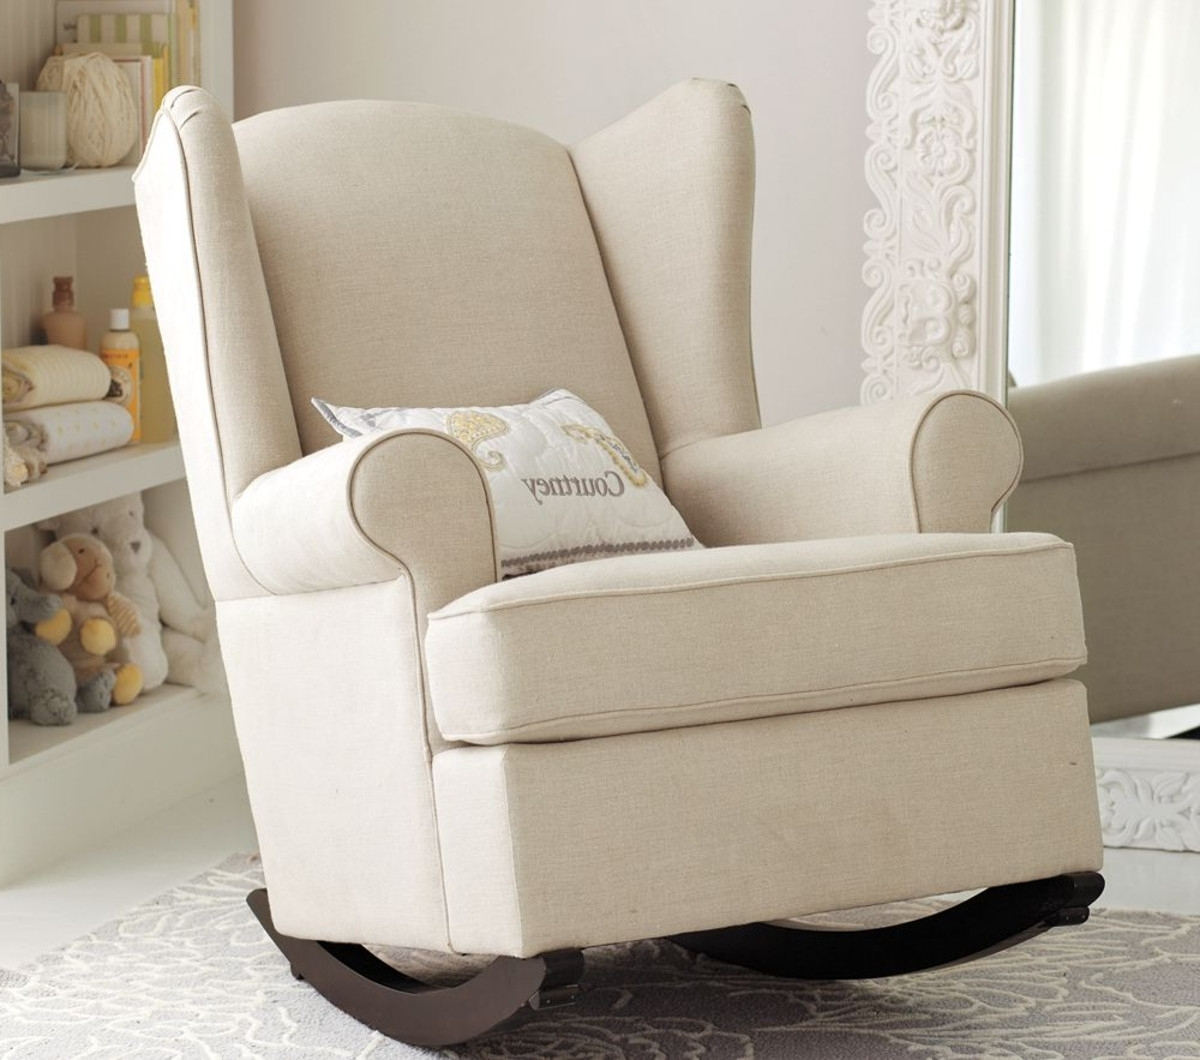 Most Current Nursery Rocking Chair Courtney – Nursery Rocking Chair For Mom And Inside Rocking Chairs For Nursery (View 6 of 15)